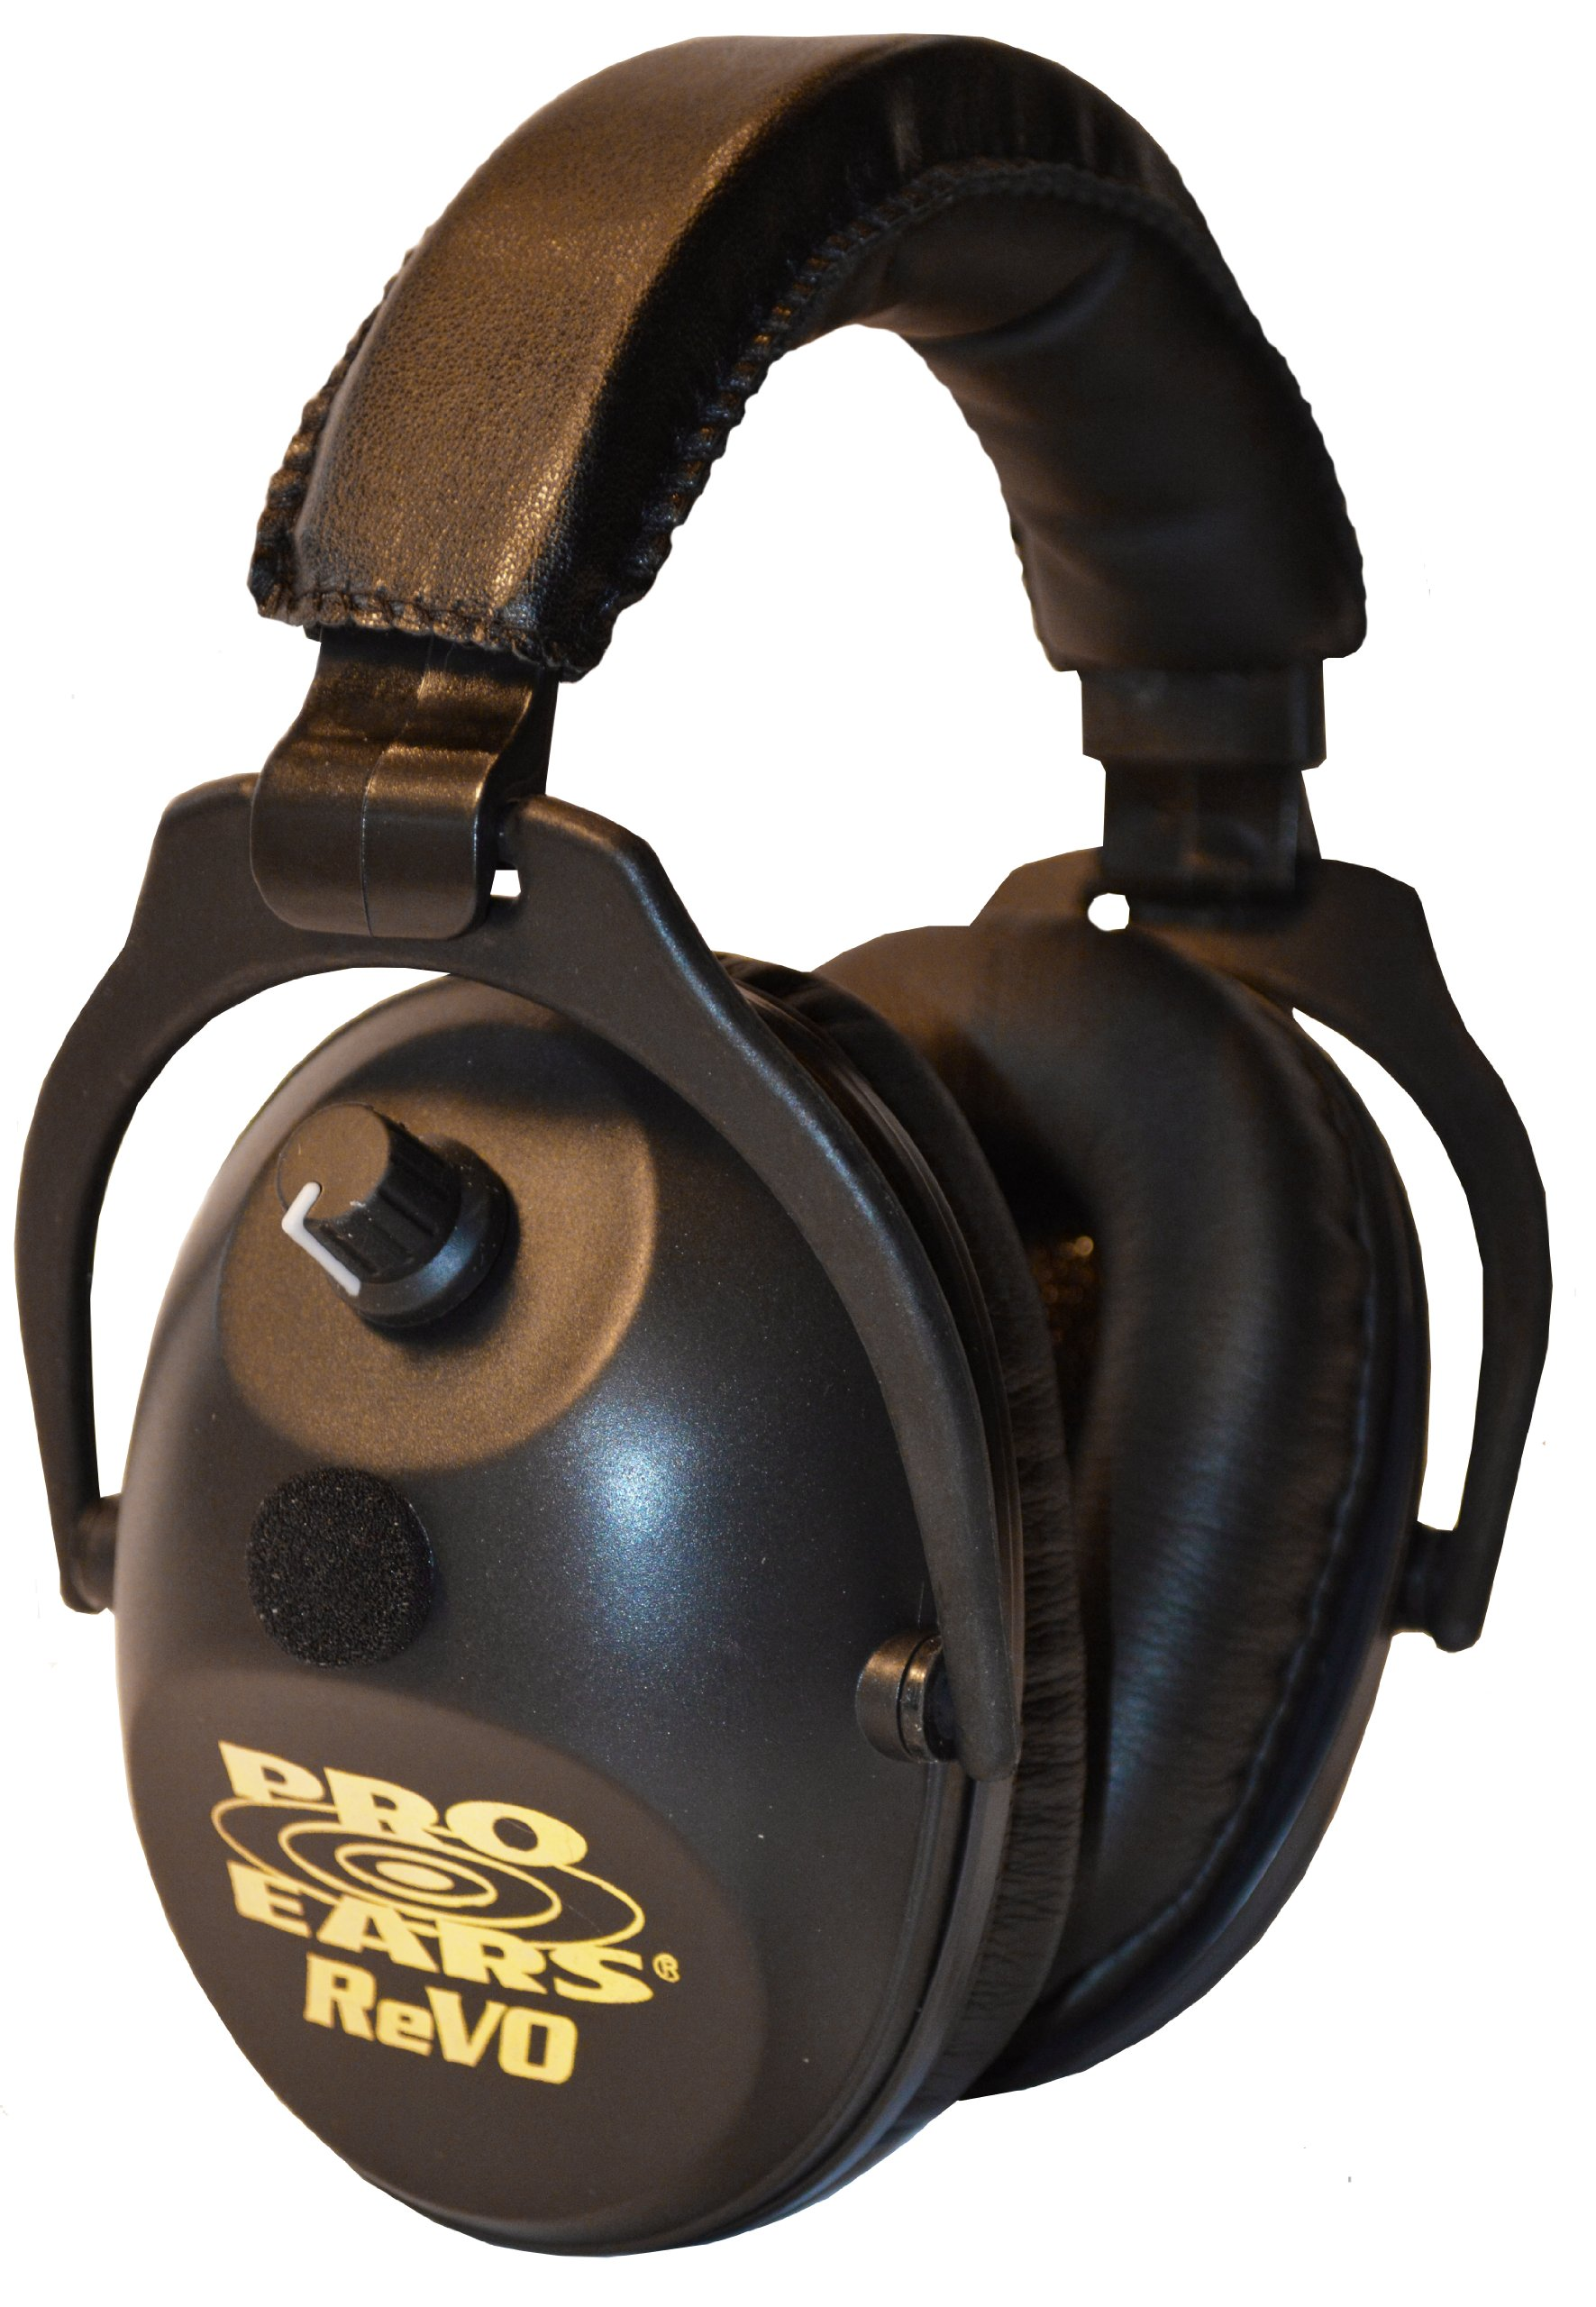 Pro Ears - ReVO - Electronic Hearing Protection and Amplification - NRR 25 - Youth and Women Ear Muffs Ear Muffs - Black by Pro Ears